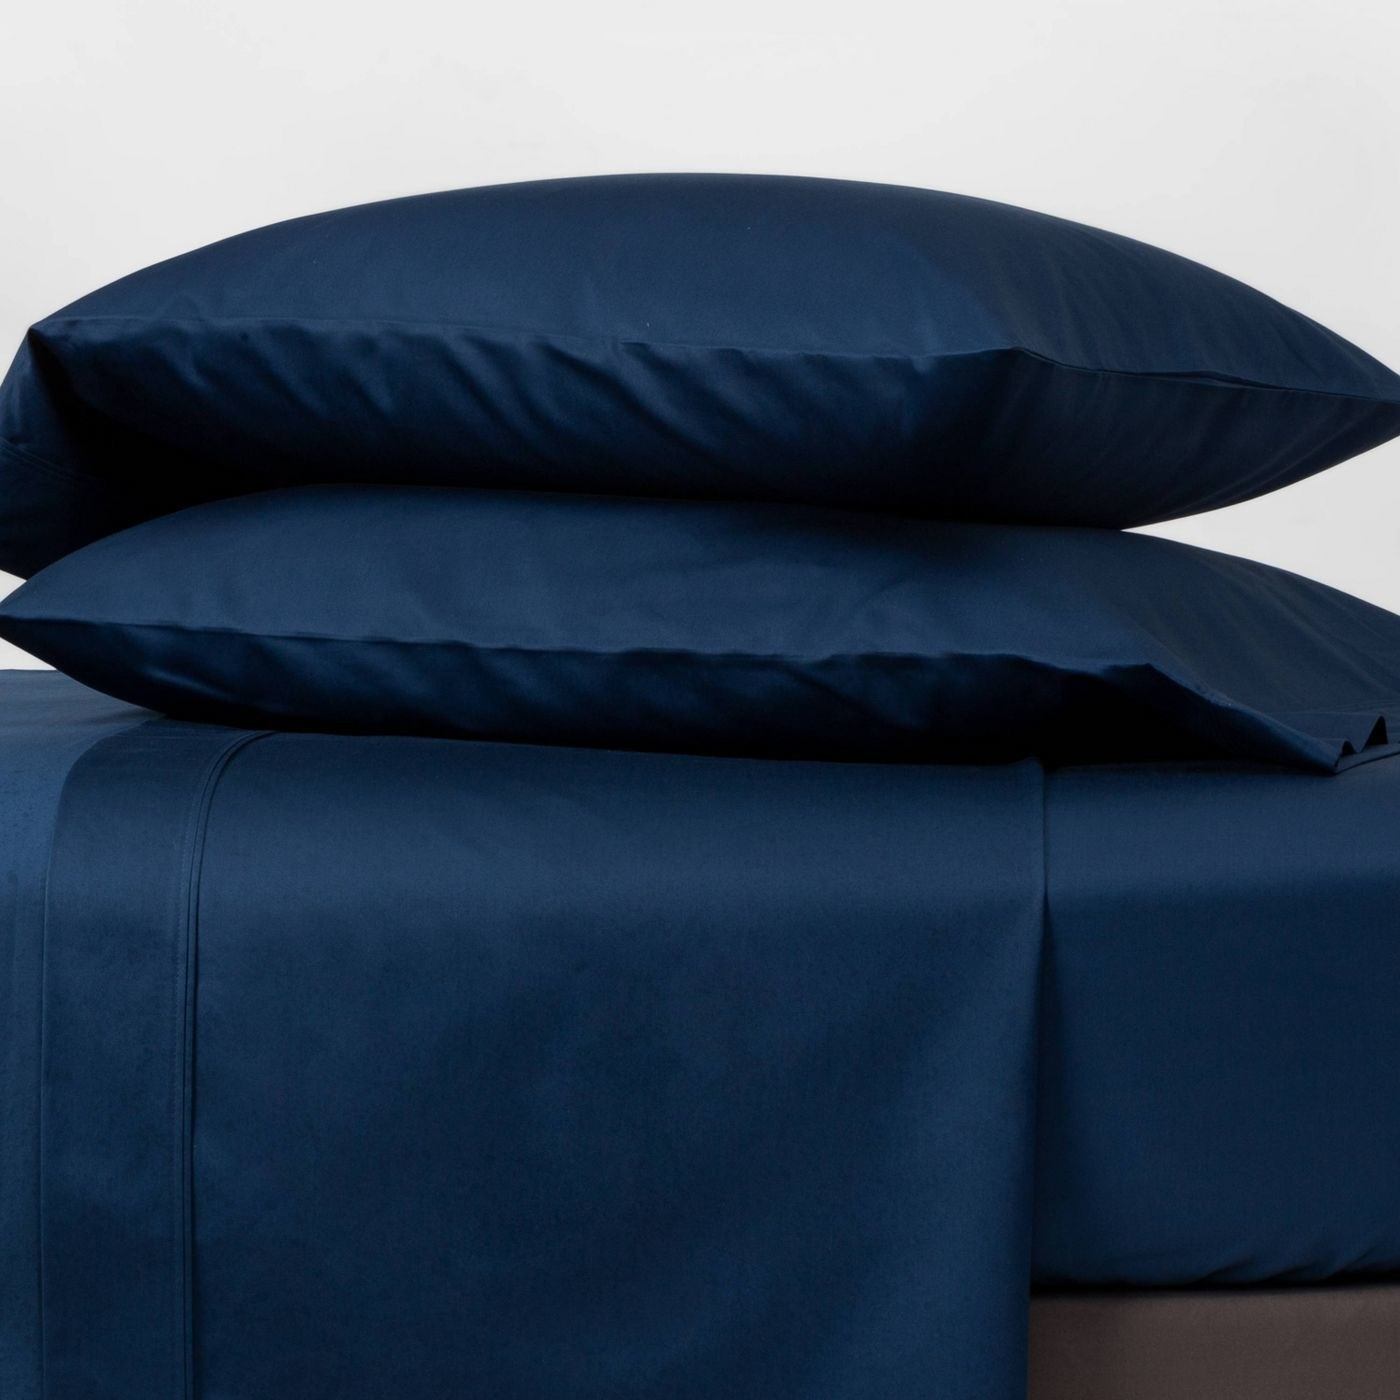 The sheets, in Indigo